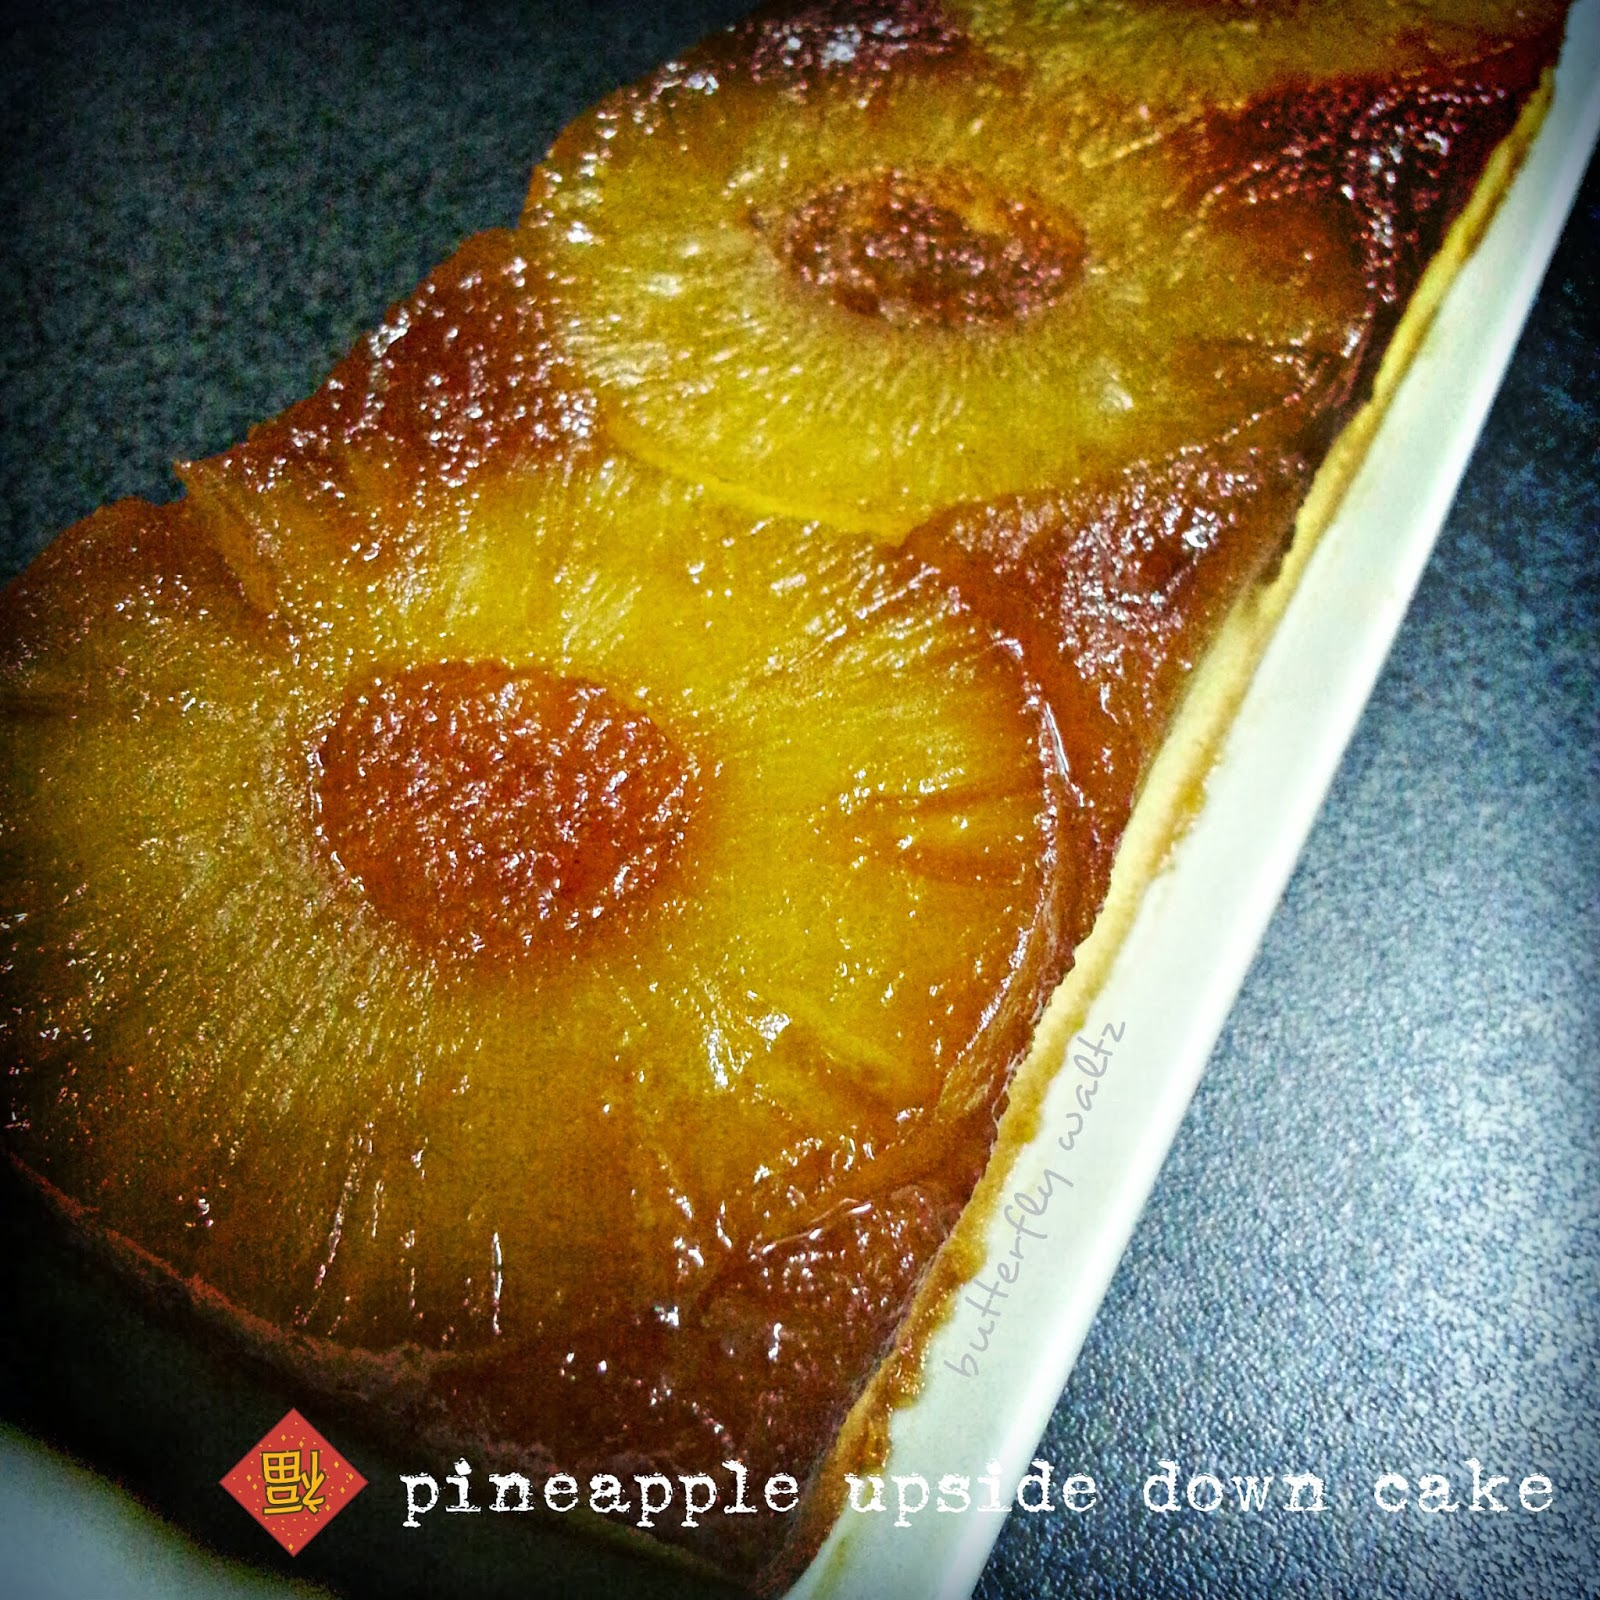 Waltzing butterflies: Caramel pineapple upside down cake ~ awesome ...